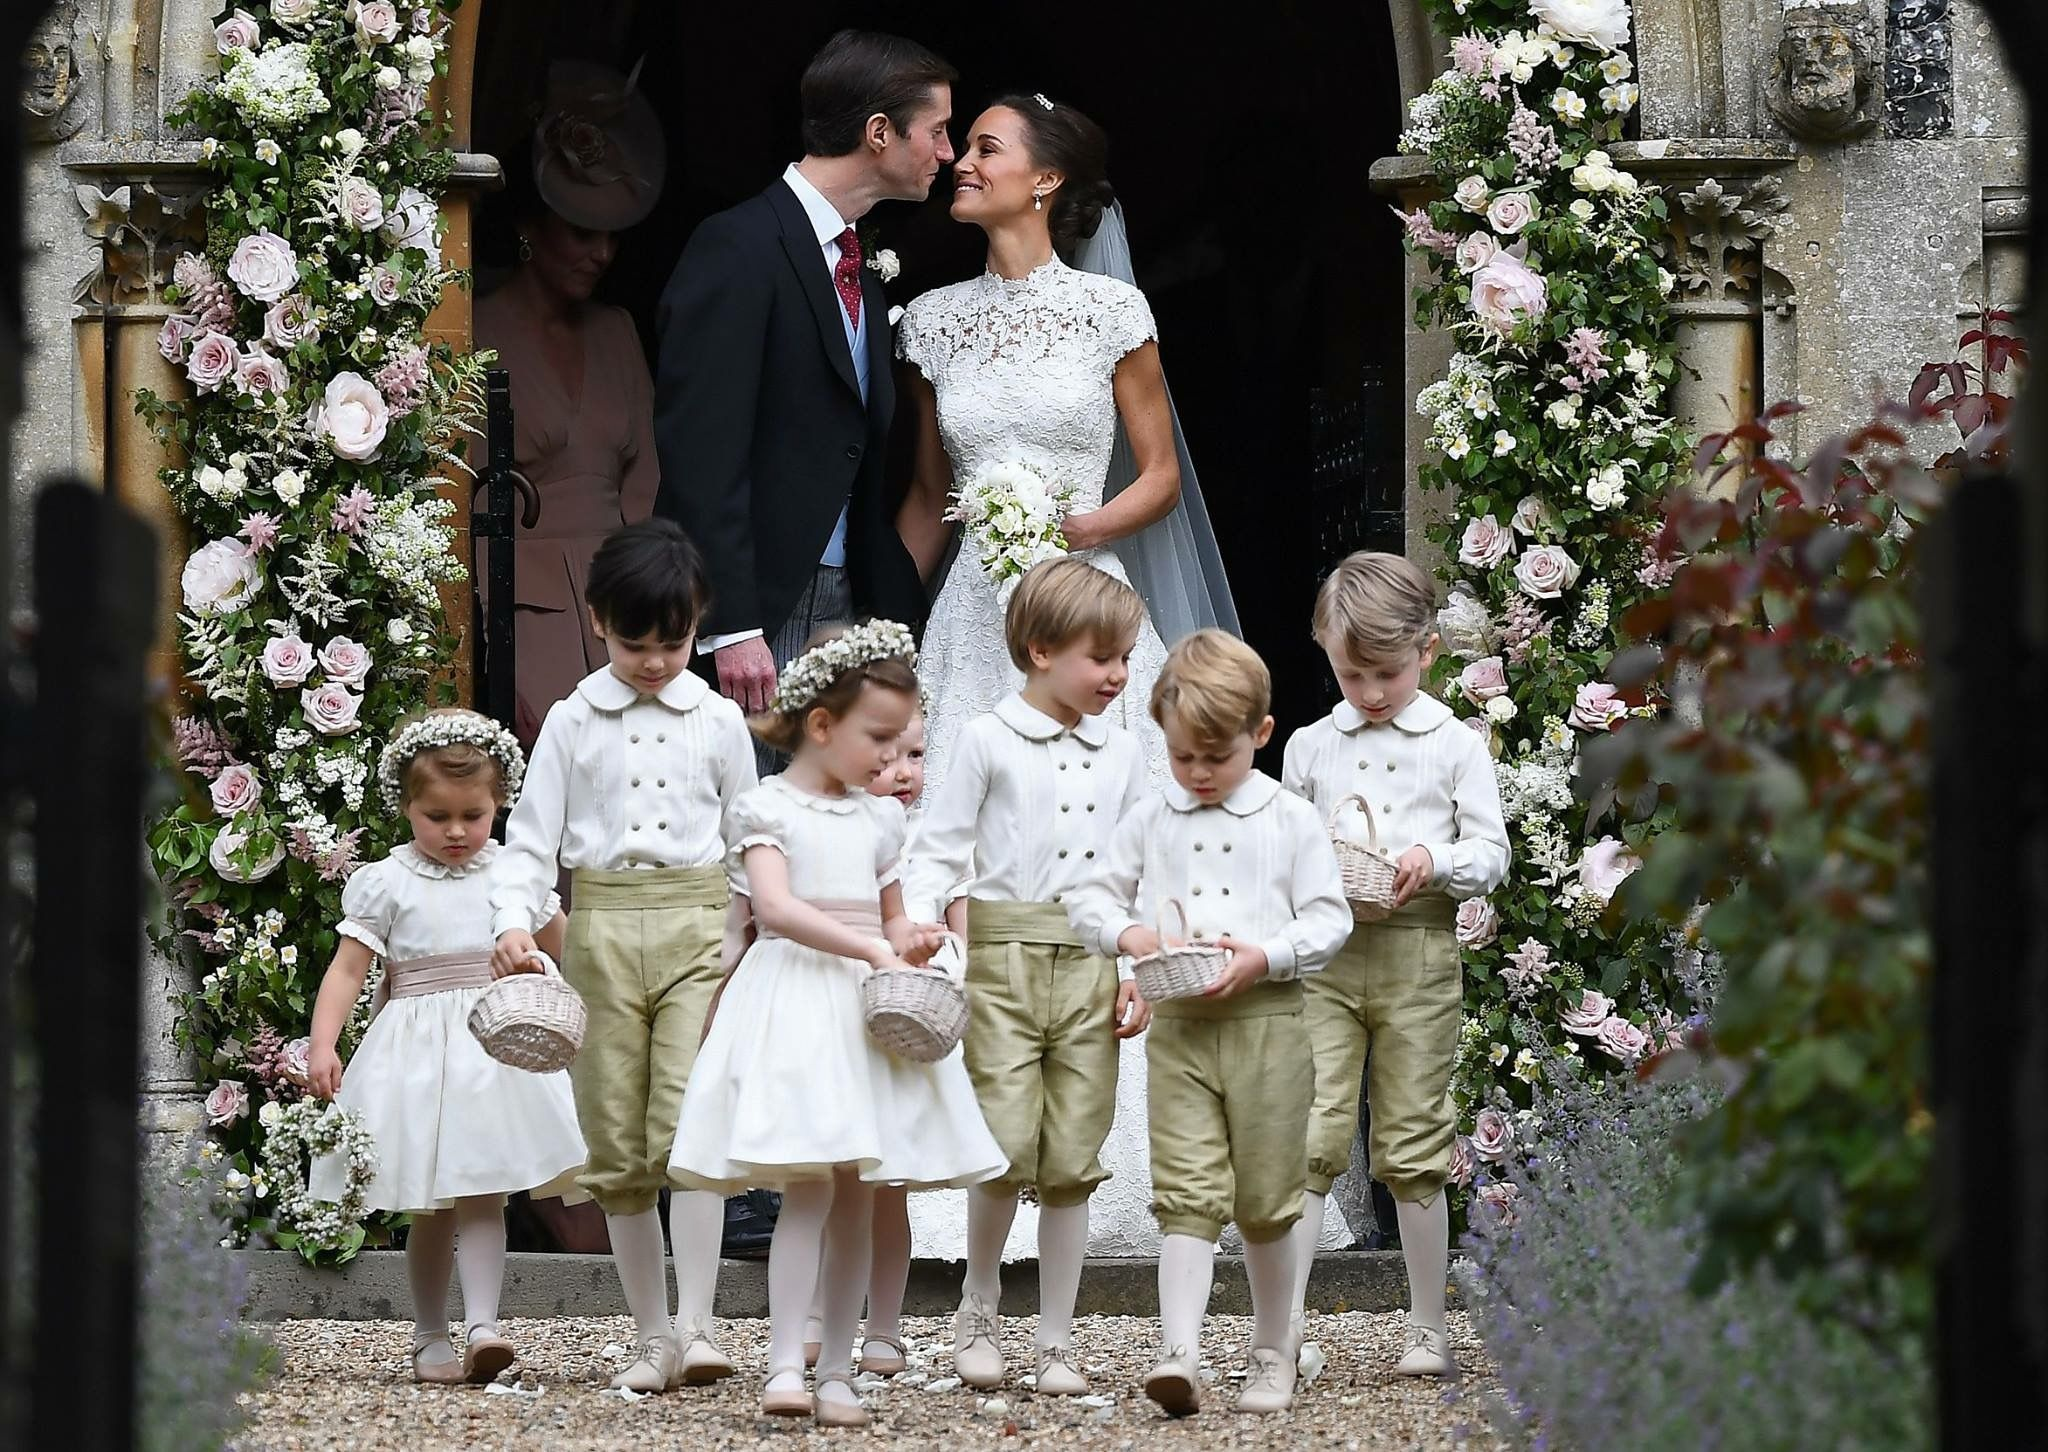 Wedding of the year: Pippa Middleton married a millionaire